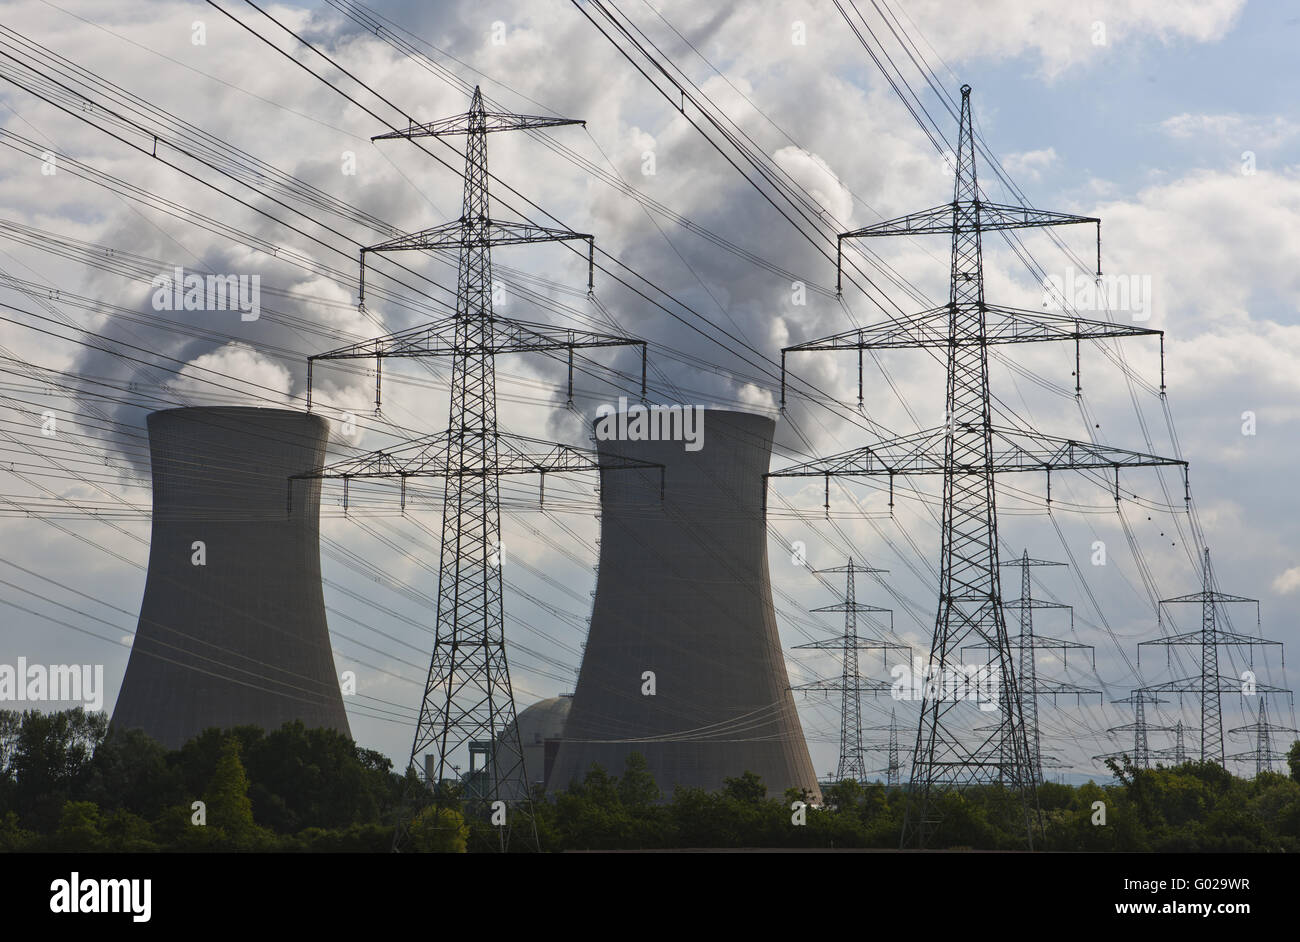 Cooling towers of nuclear power plant nuclear power plant - Stock Image